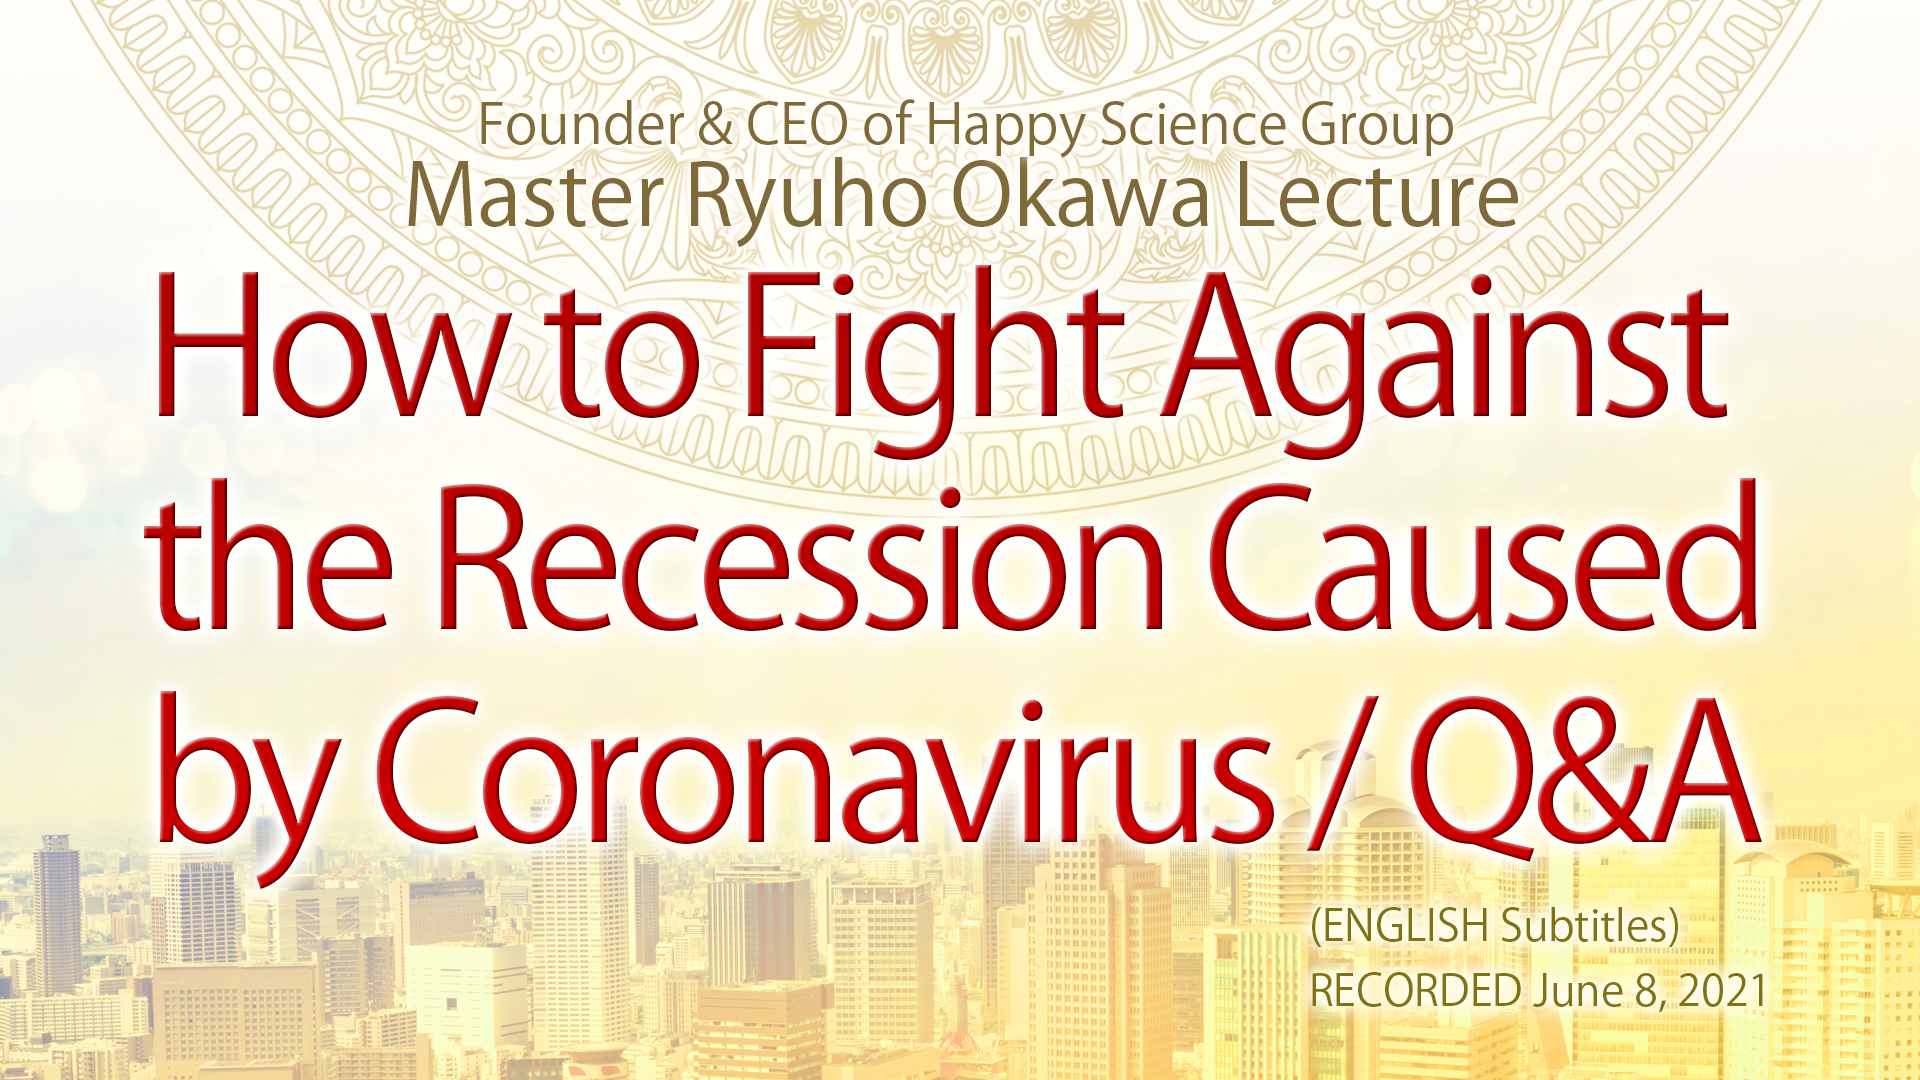 How to Fight Against the Recession Caused by Coronavirus : Q&A